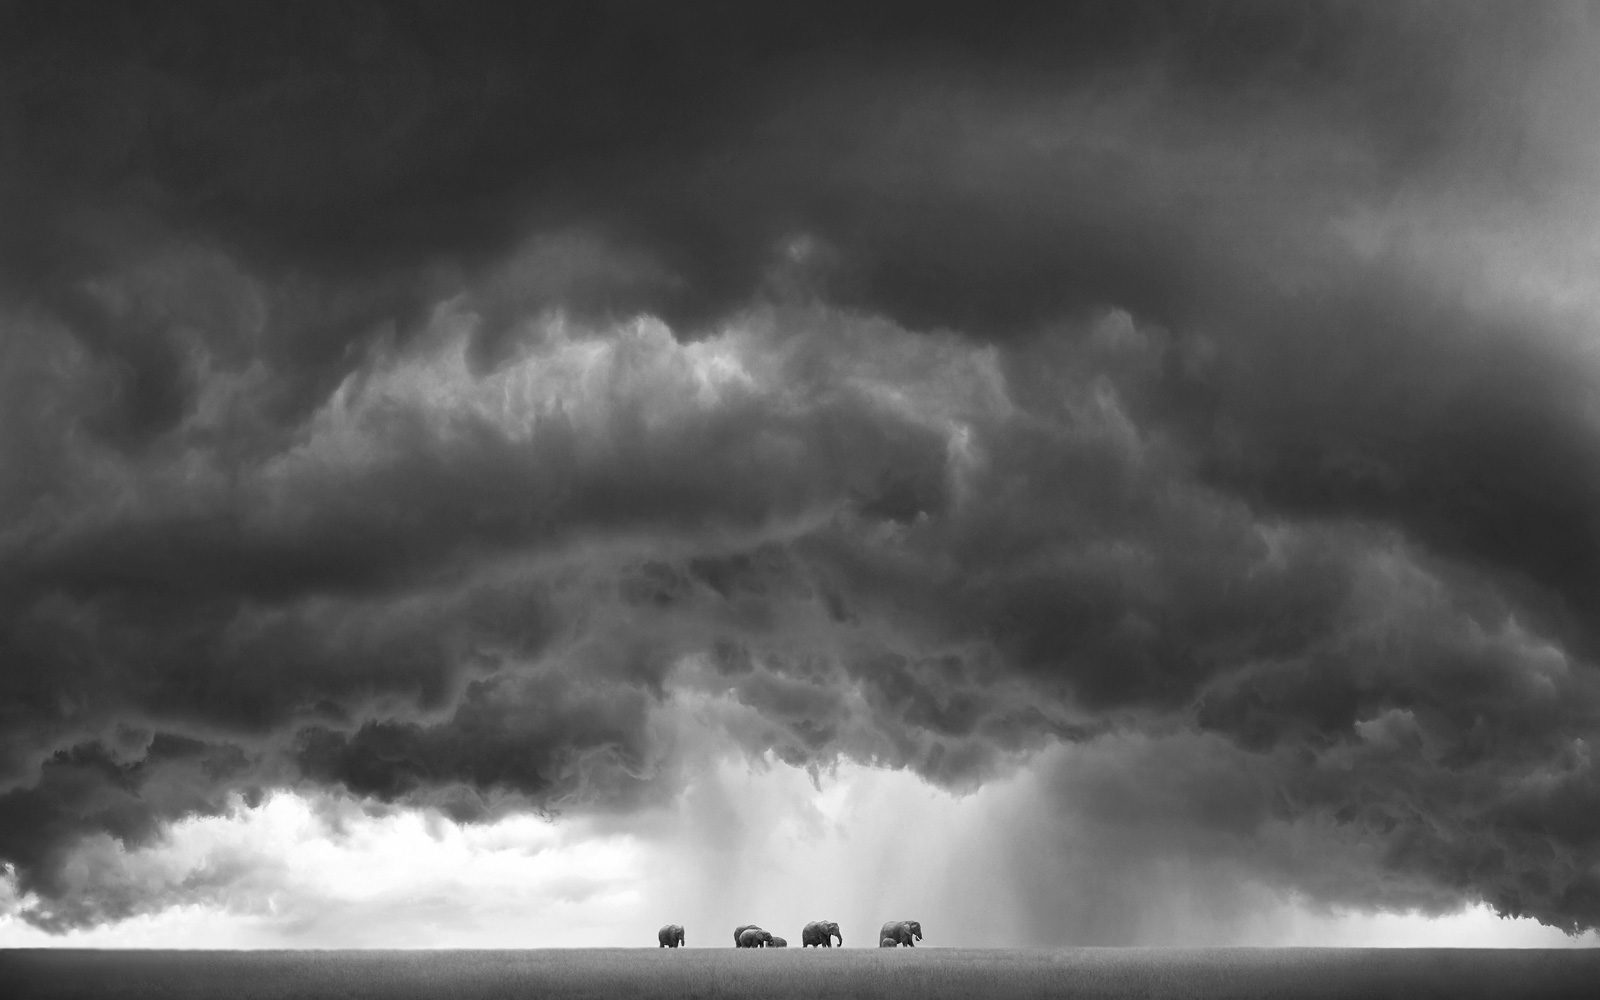 """The land of giants"" in Maasai Mara National Reserve, Kenya © Björn Persson (Photographer of the Year 2017 Semi-finalist)"